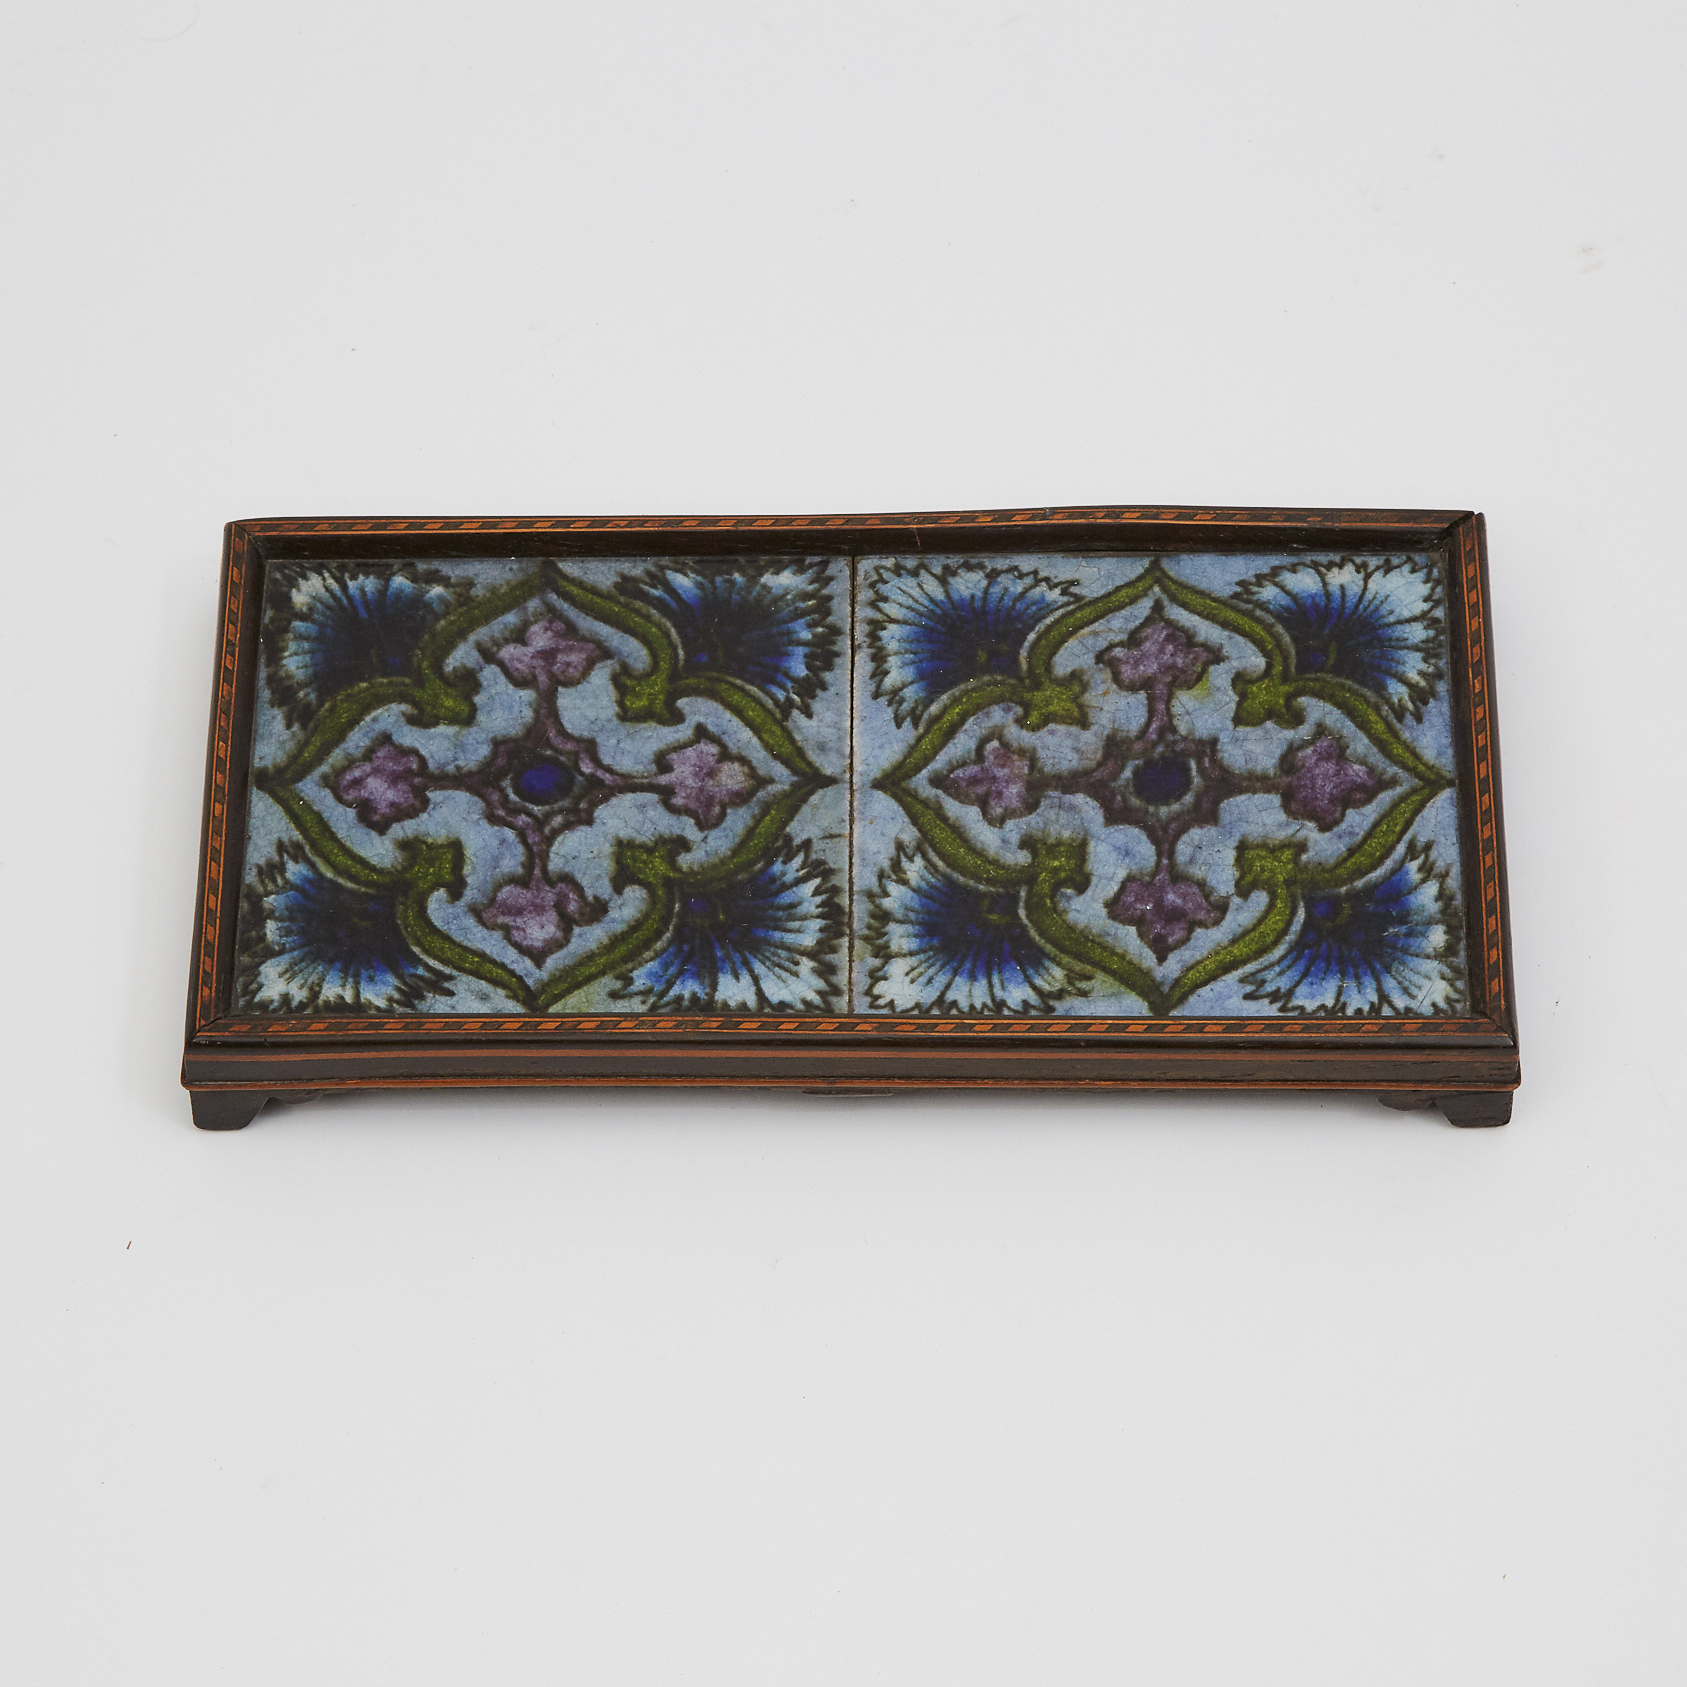 English Pottery Two-Tile Trivet, possibly William de Morgan, late 19th century